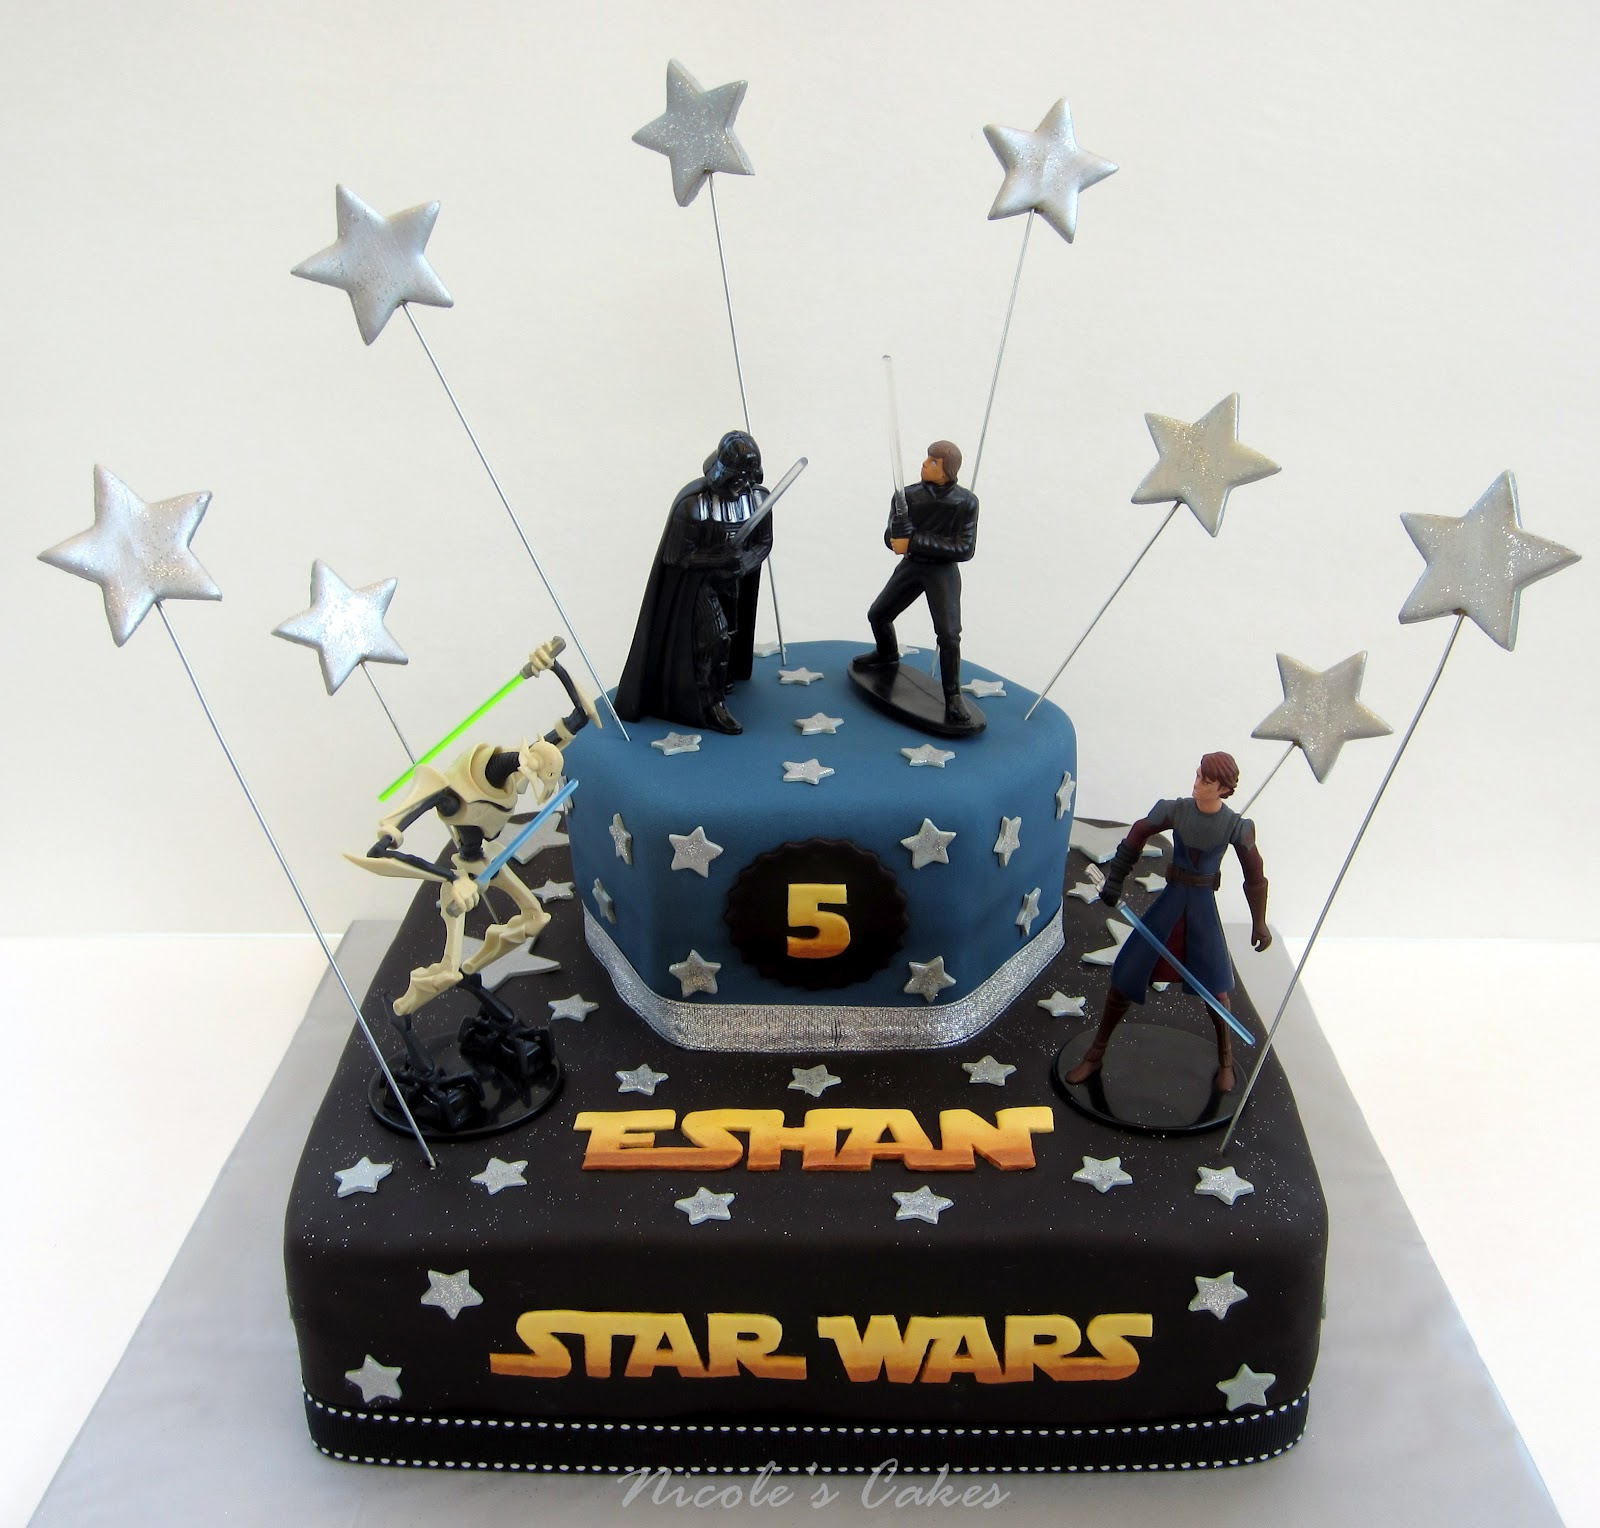 Star wars cakes decoration ideas little birthday cakes for Star wars dekoration